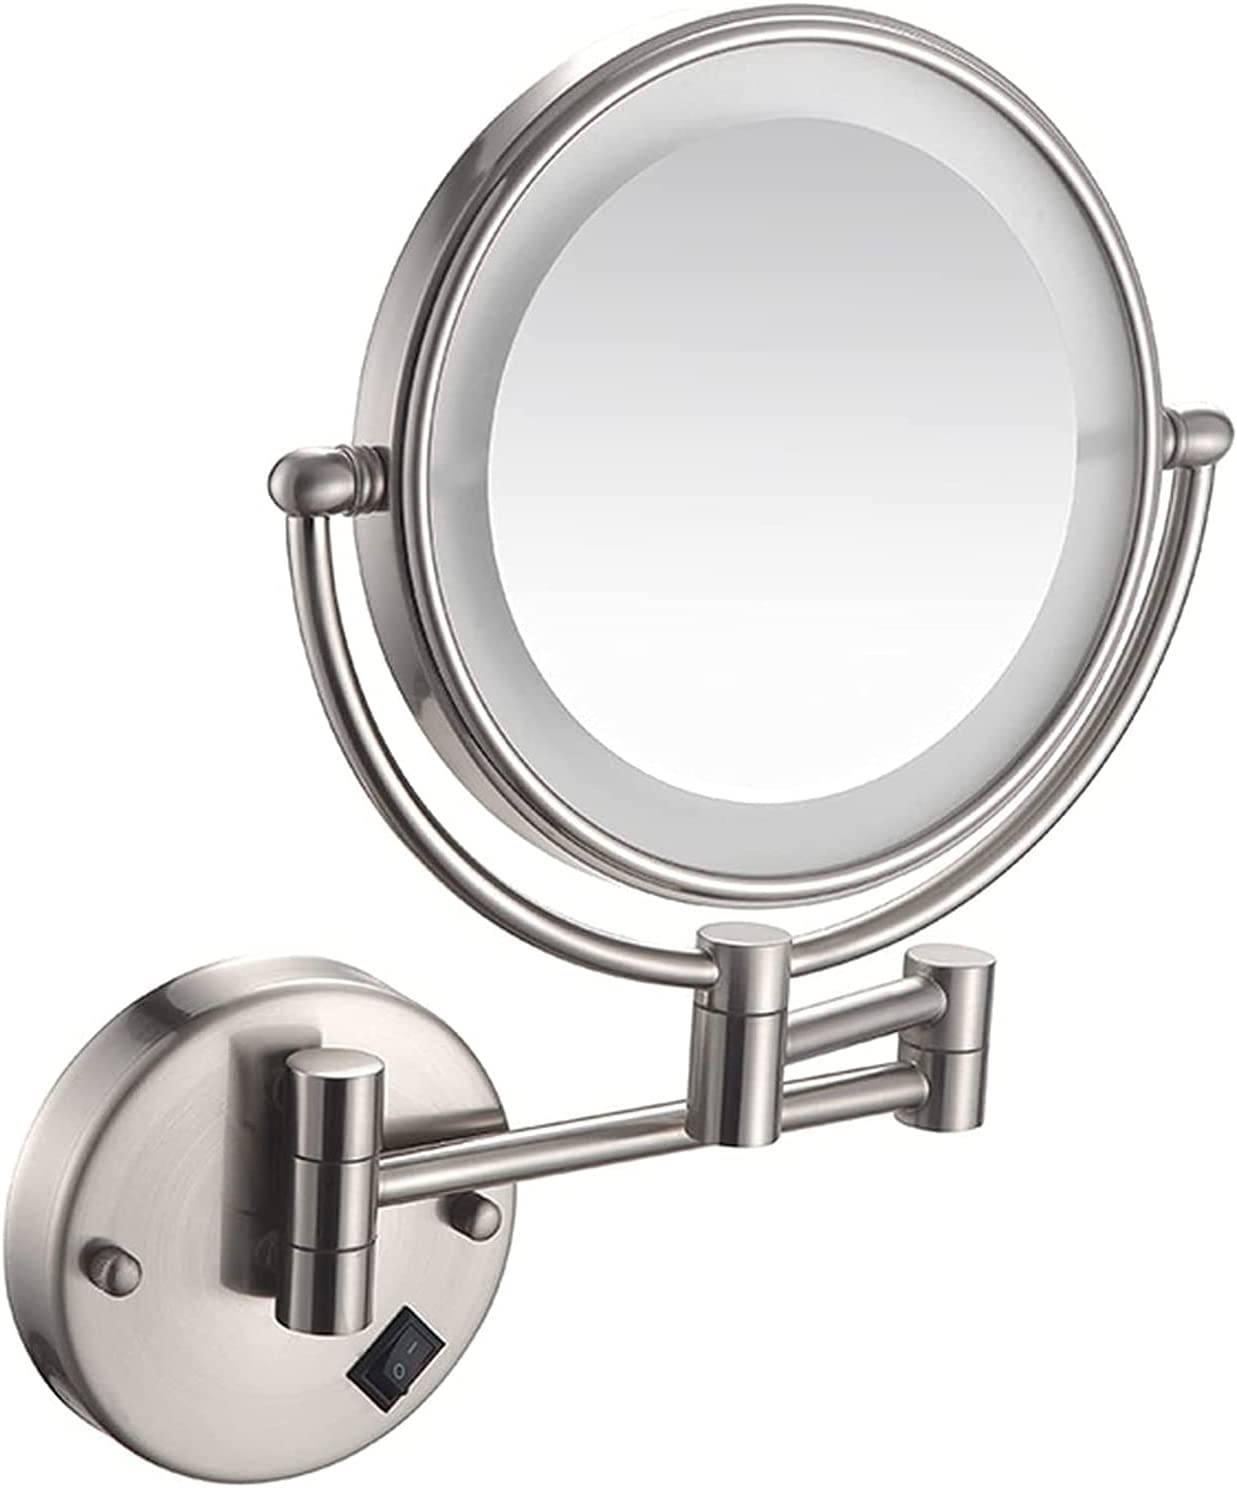 HXR Makeup Mirror with Boston Mall Lights Degree Rotation Ranking TOP6 360 Double-Sided